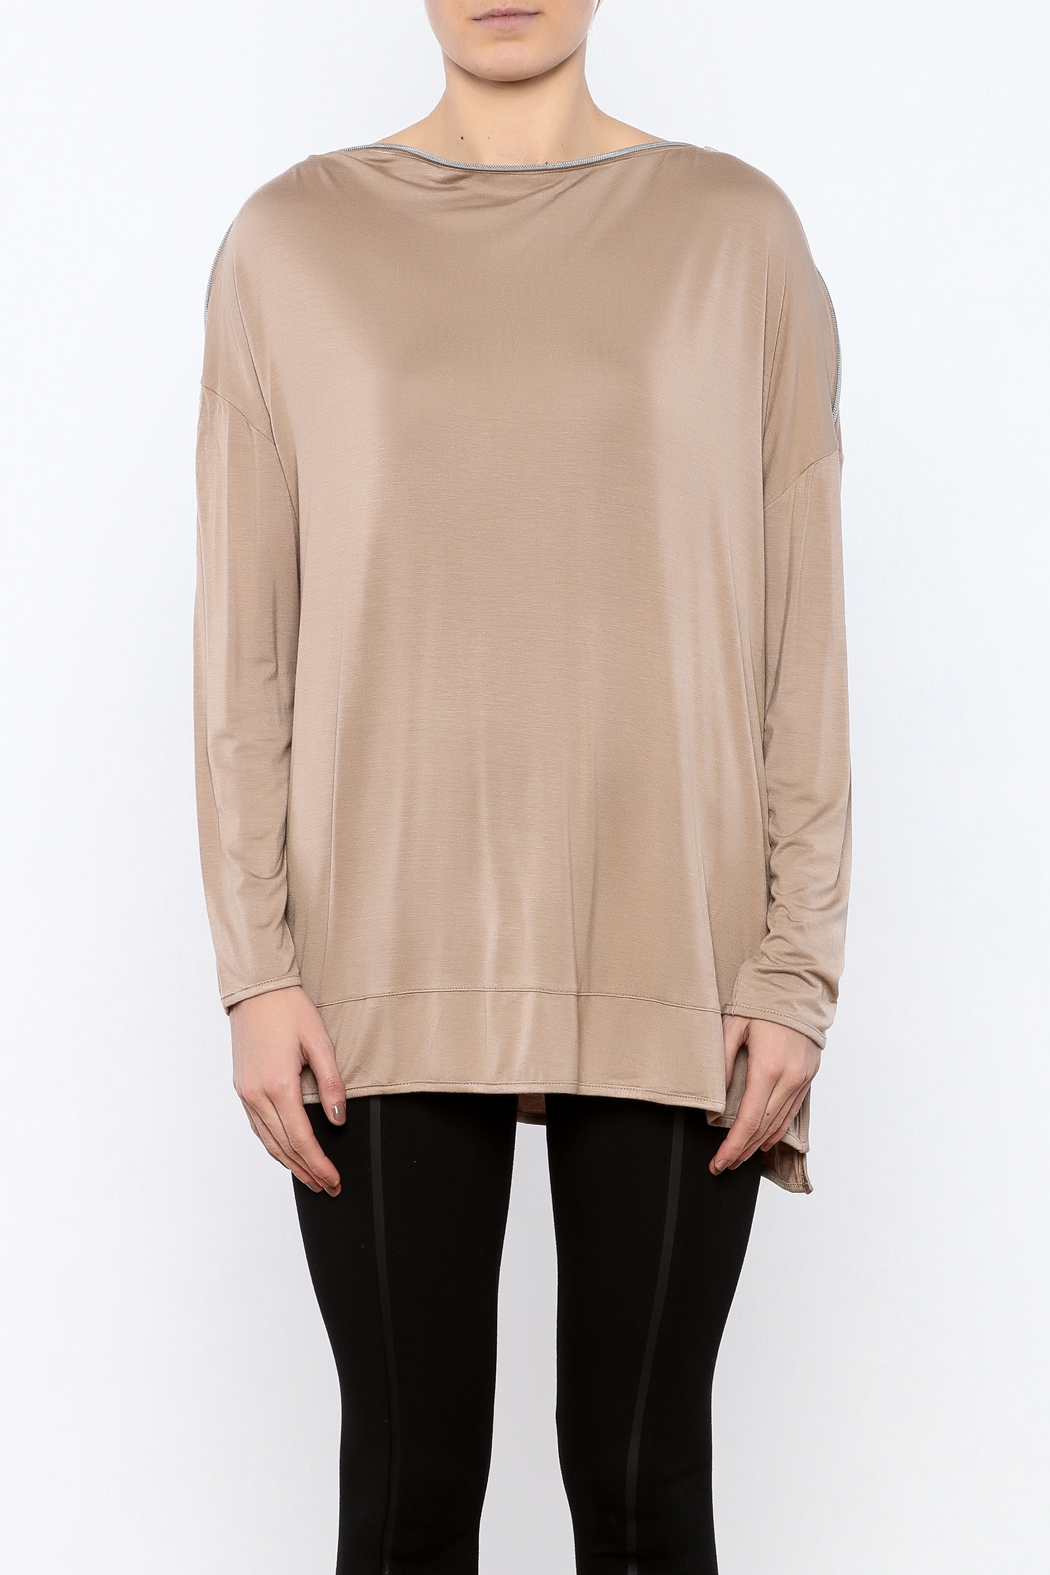 Simply Noelle Zipper Neck Top - Side Cropped Image